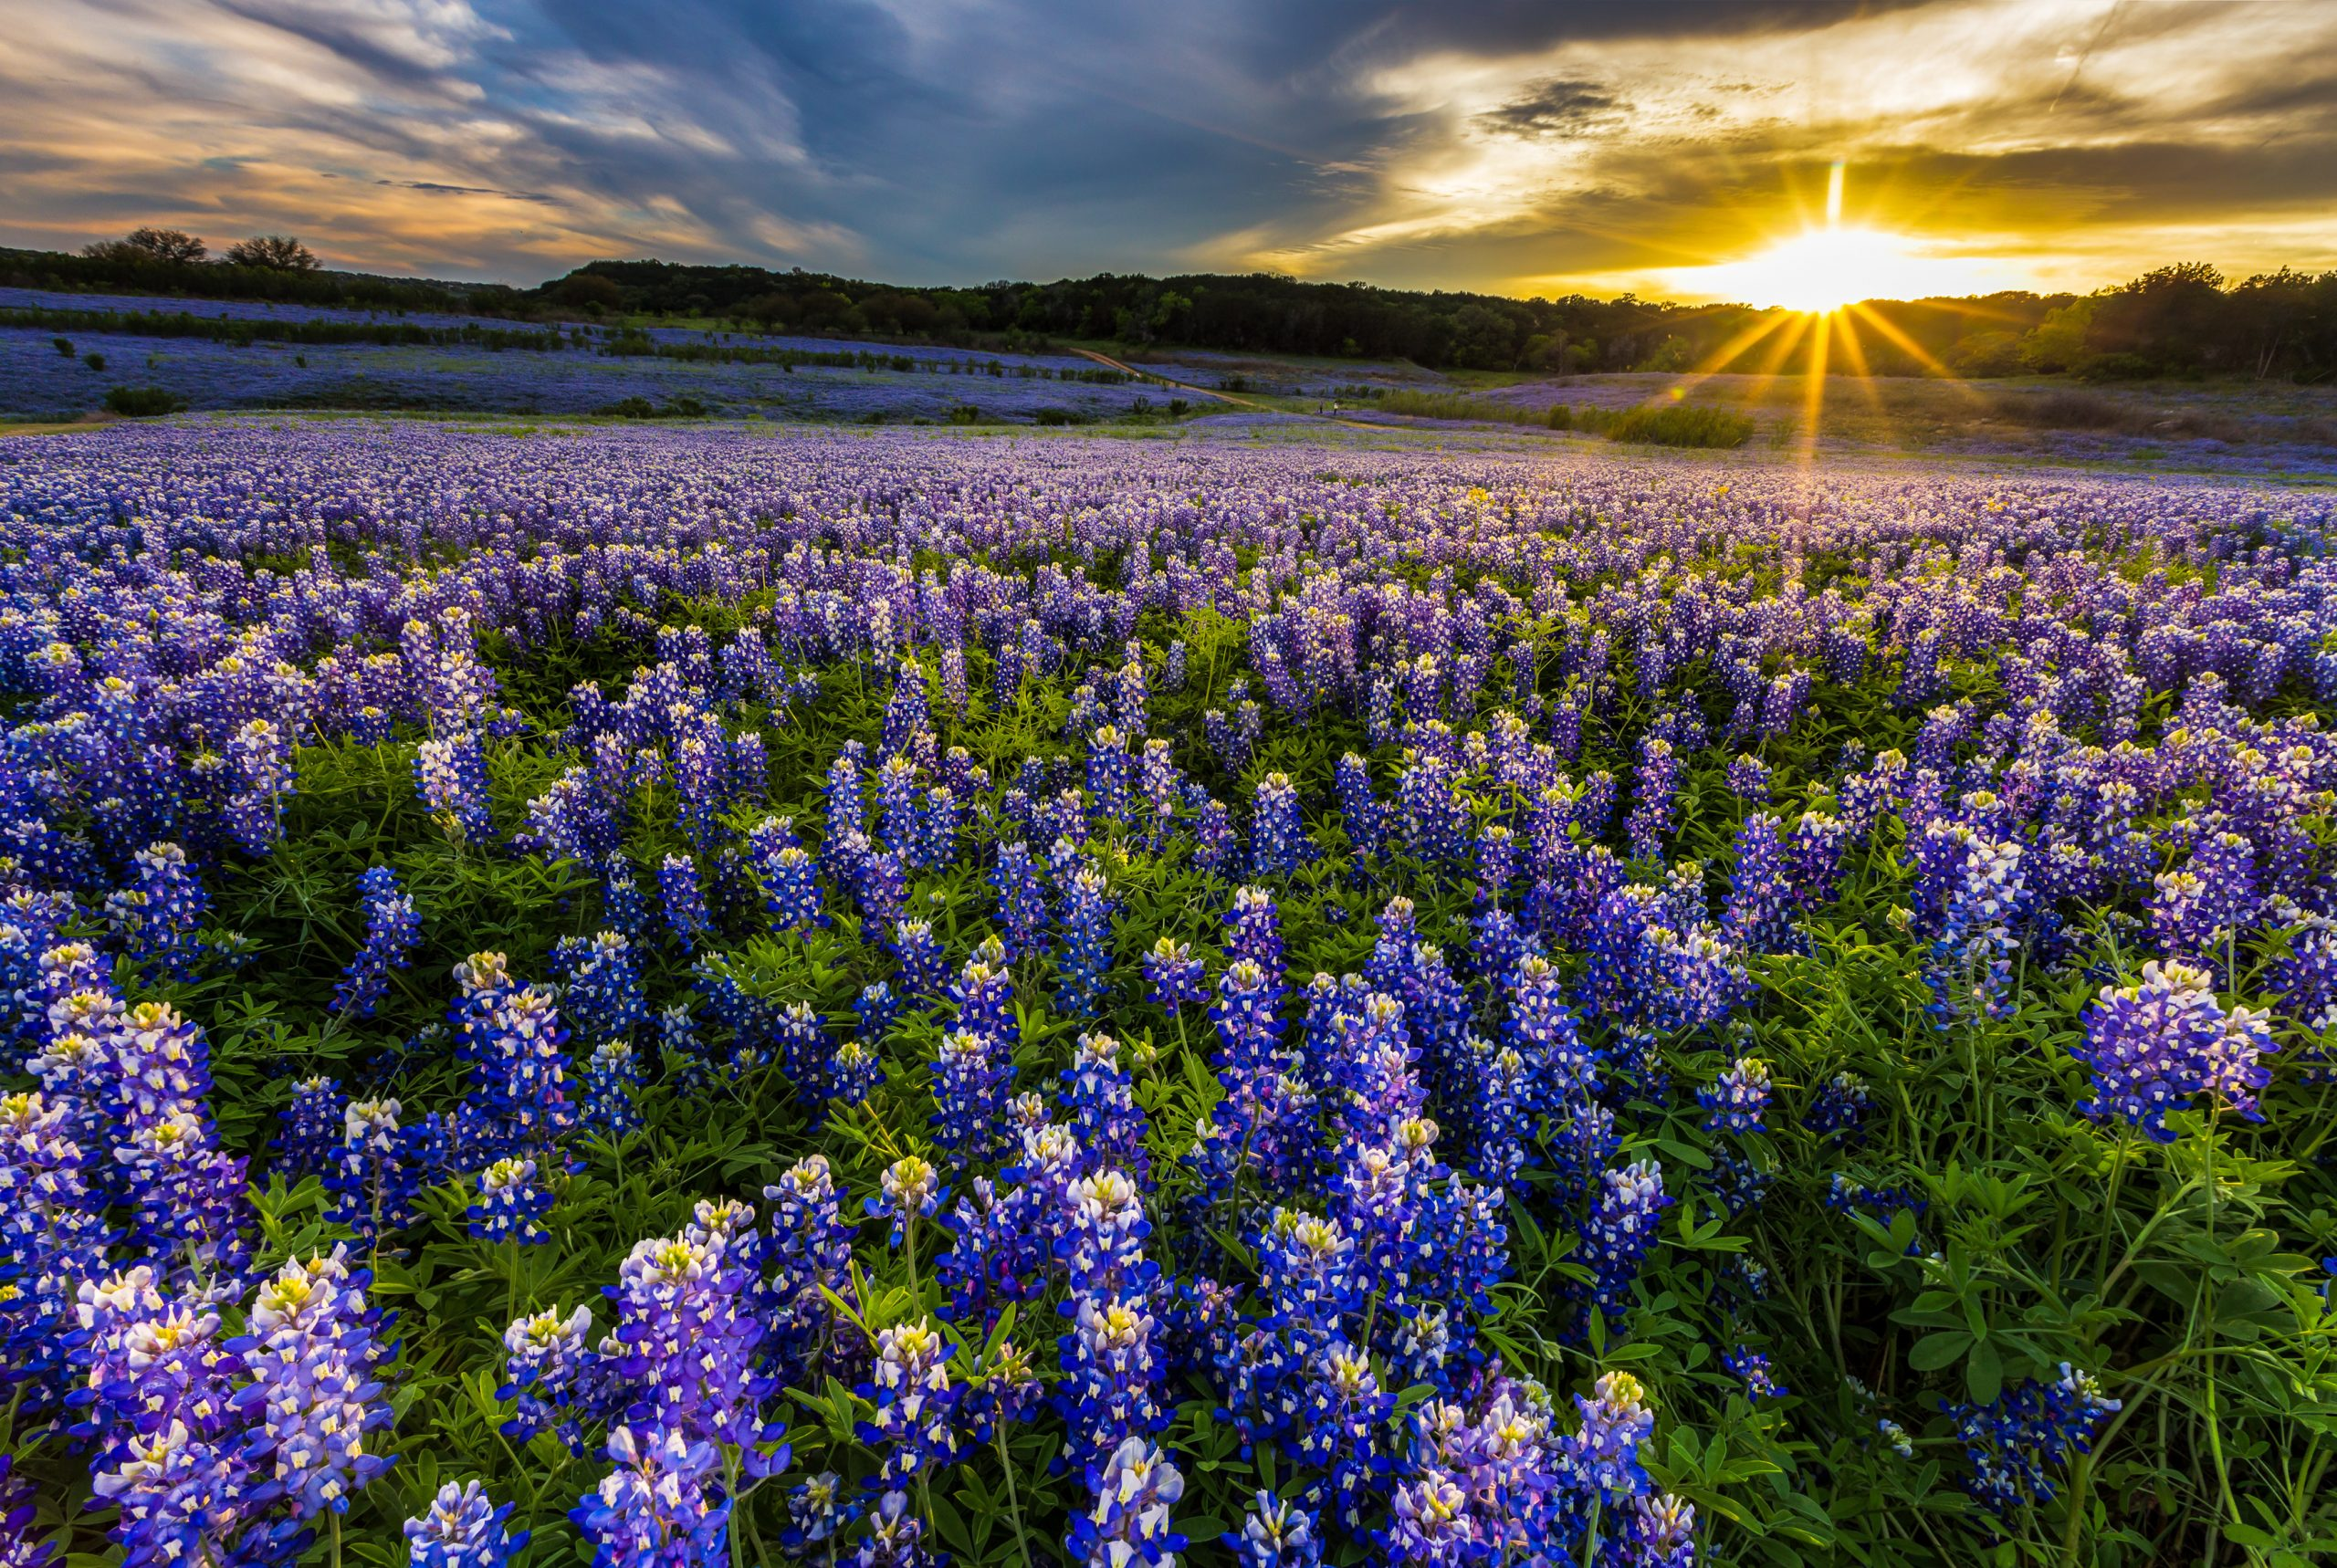 Wide field of blooming Texas bluebonnets at sunset